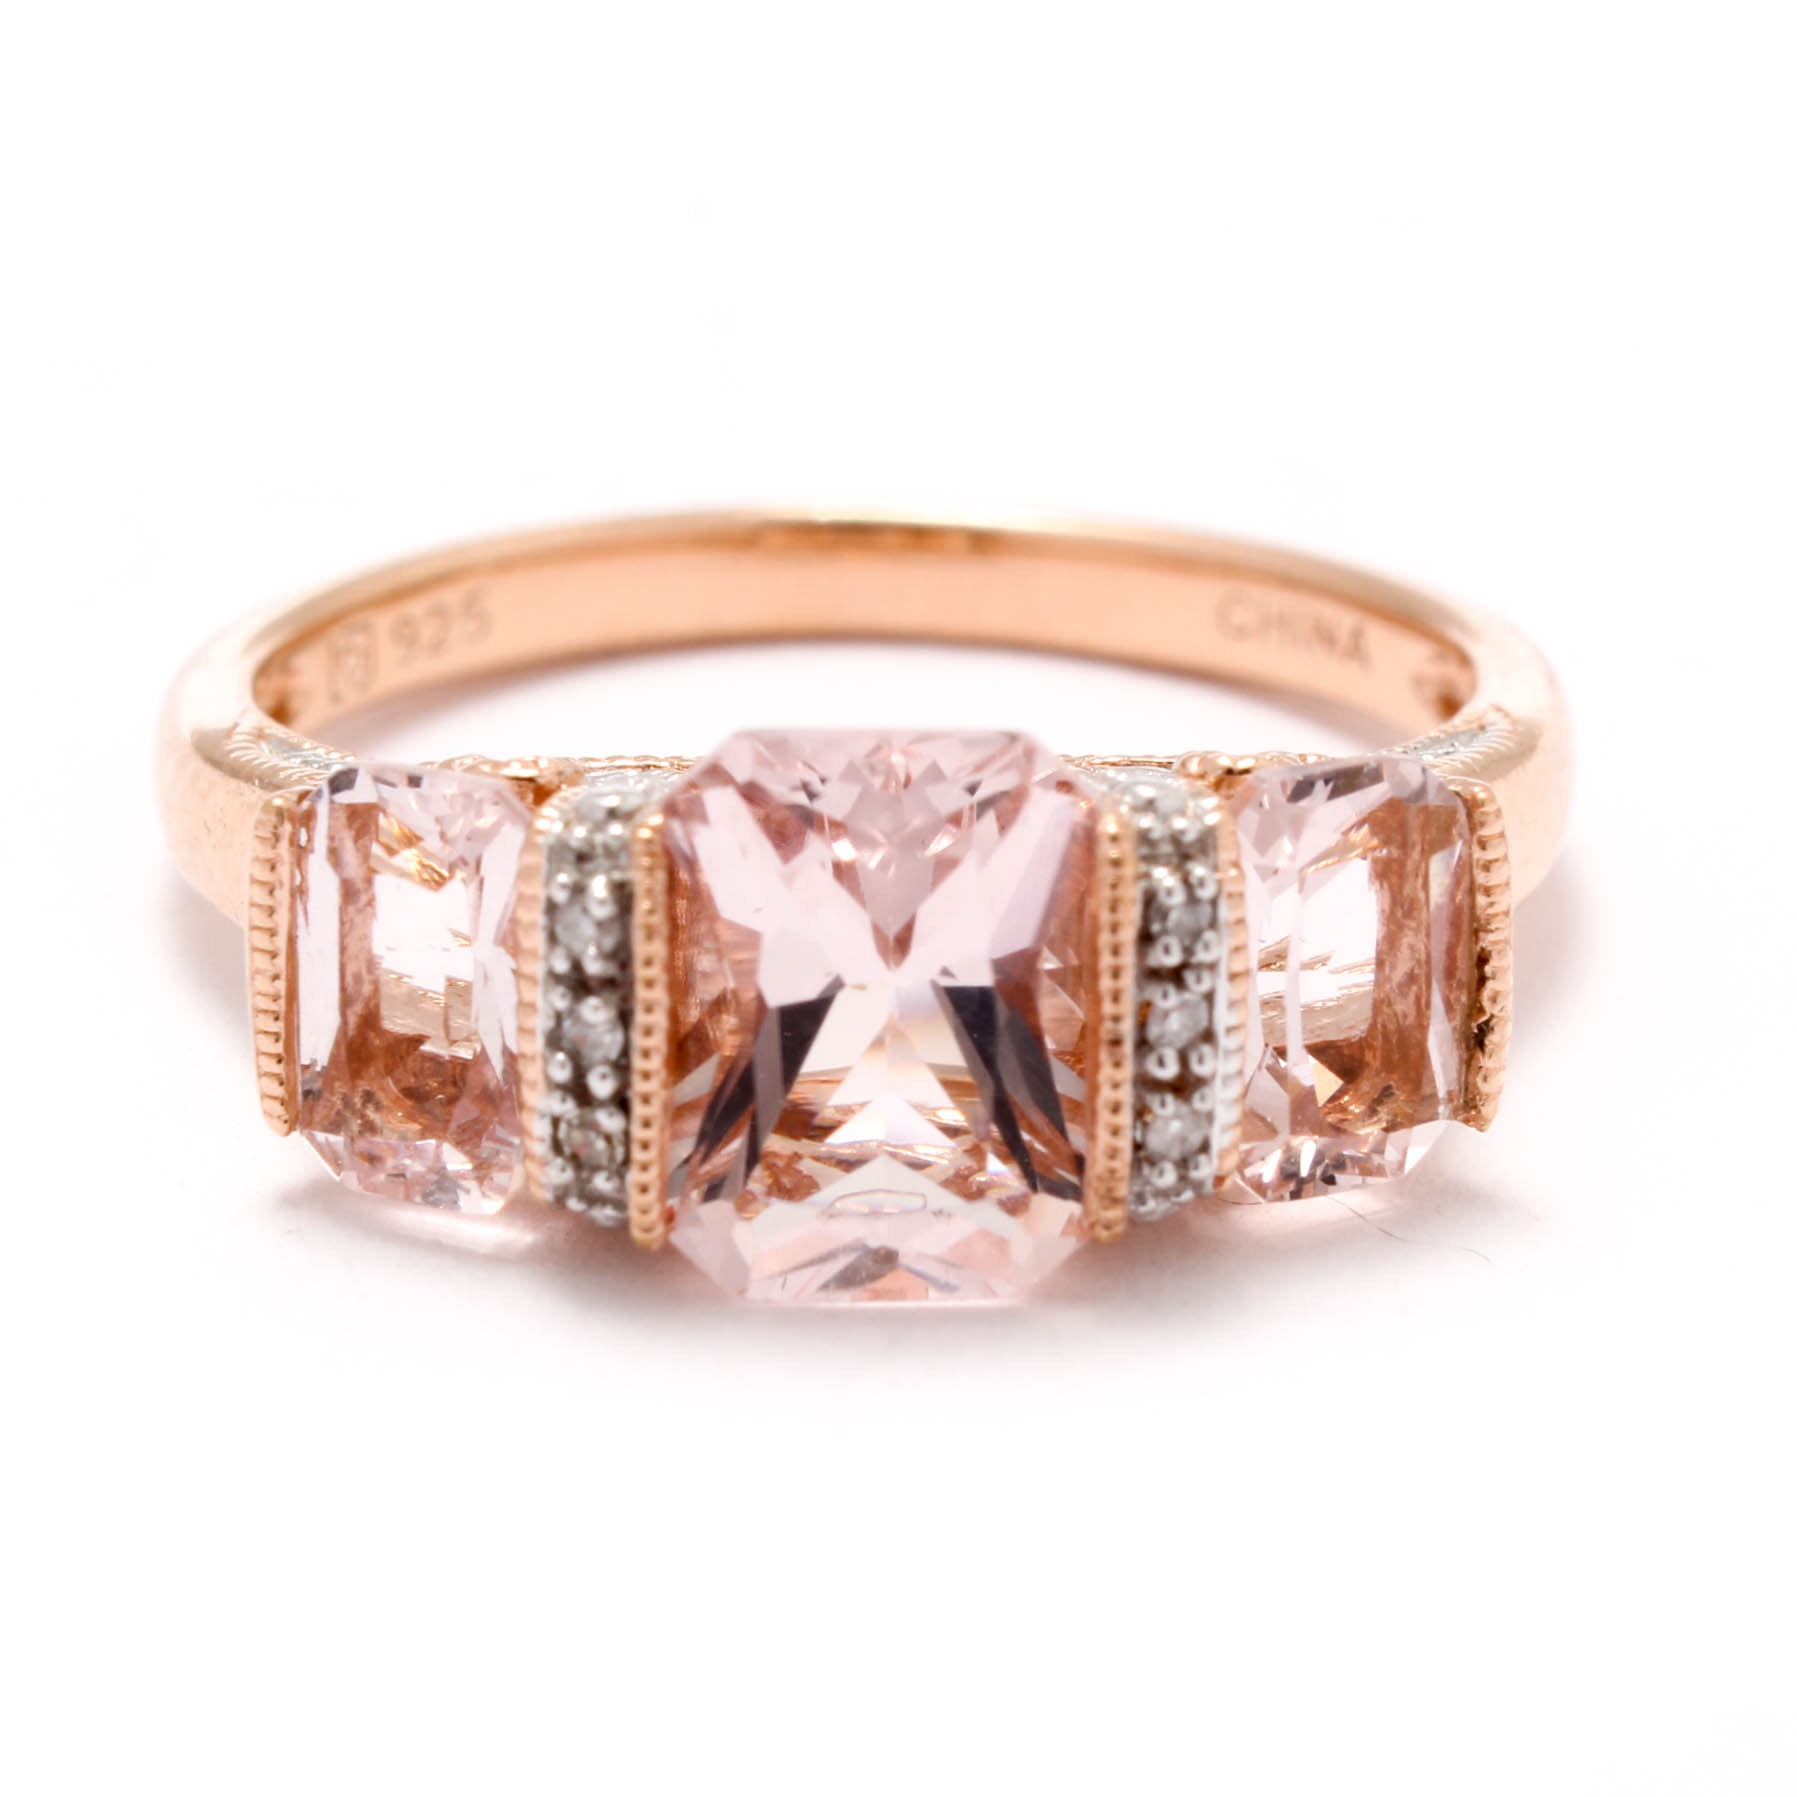 Rose Gold Wash on Sterling Silver Ring with Diamonds and Morganite